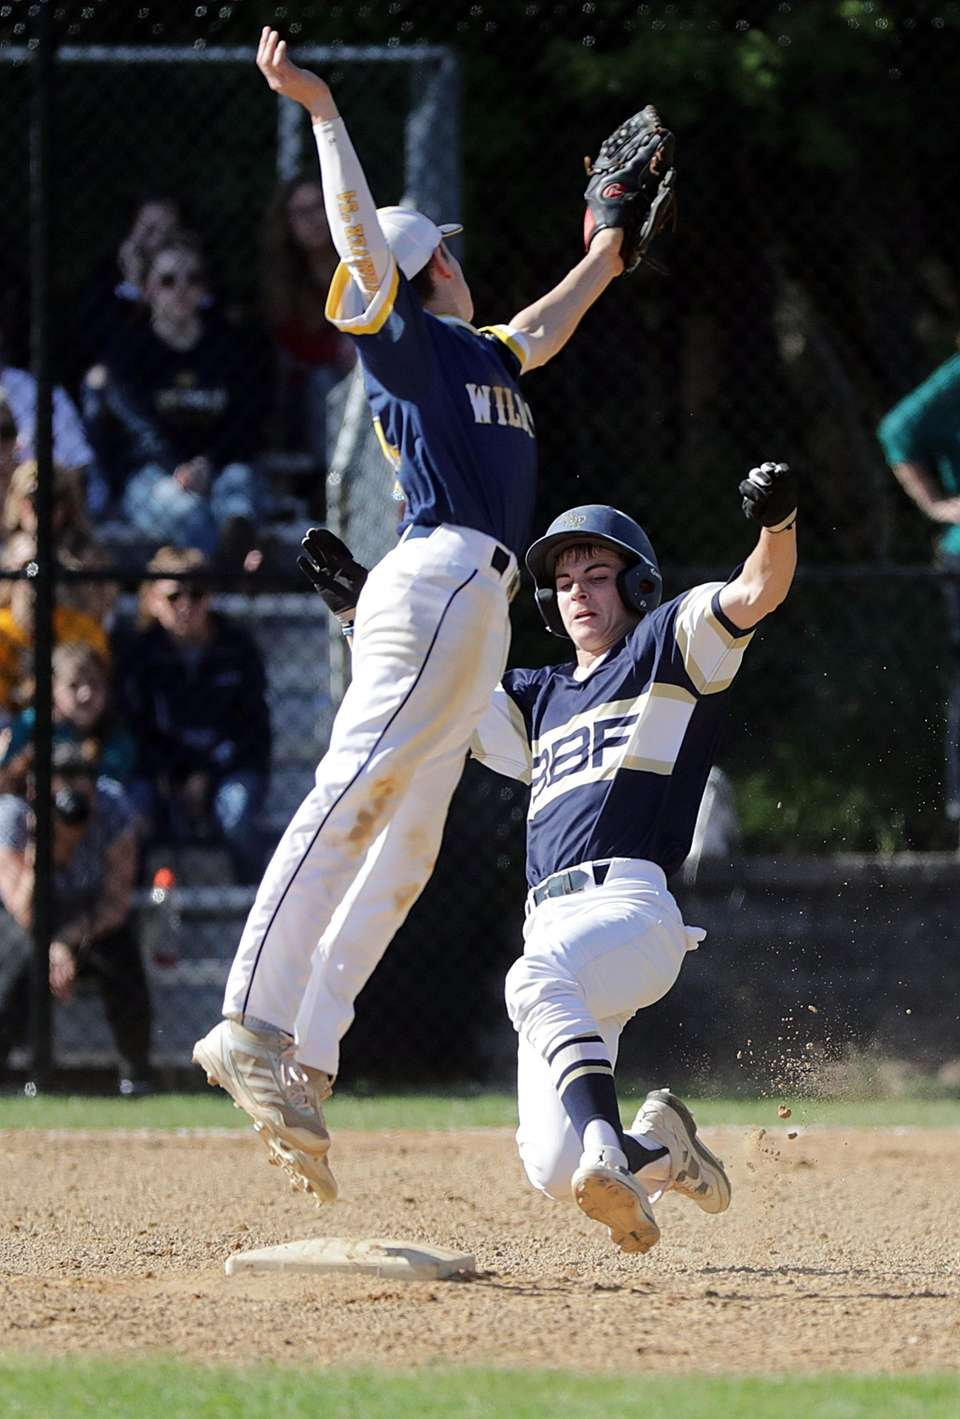 Bayport-Blue Point's Matt LeStrange is safe at second